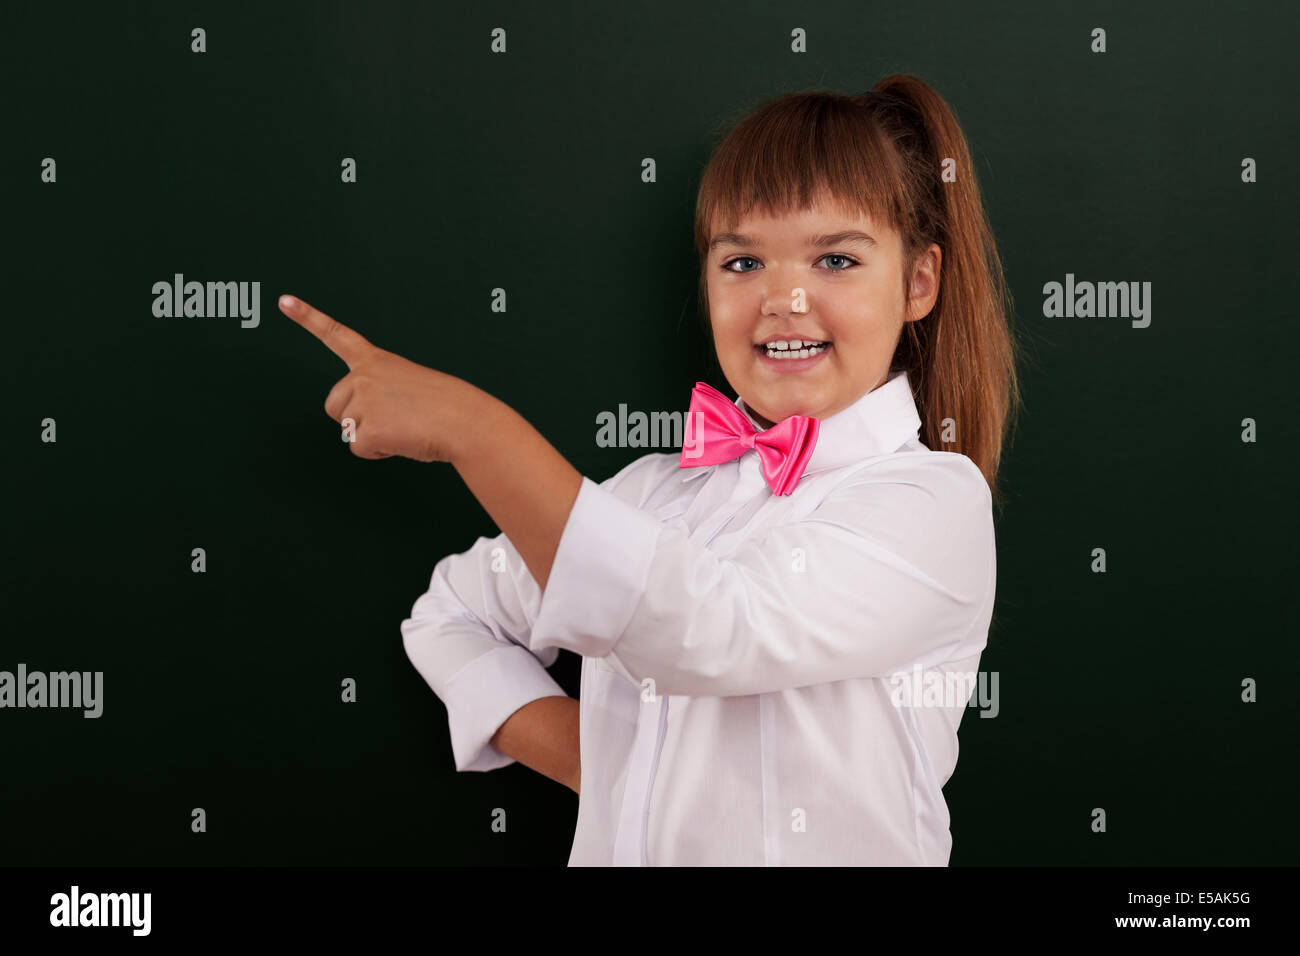 Smiling girl with pink bow tie pointing at copy space, Debica, Poland - Stock Image